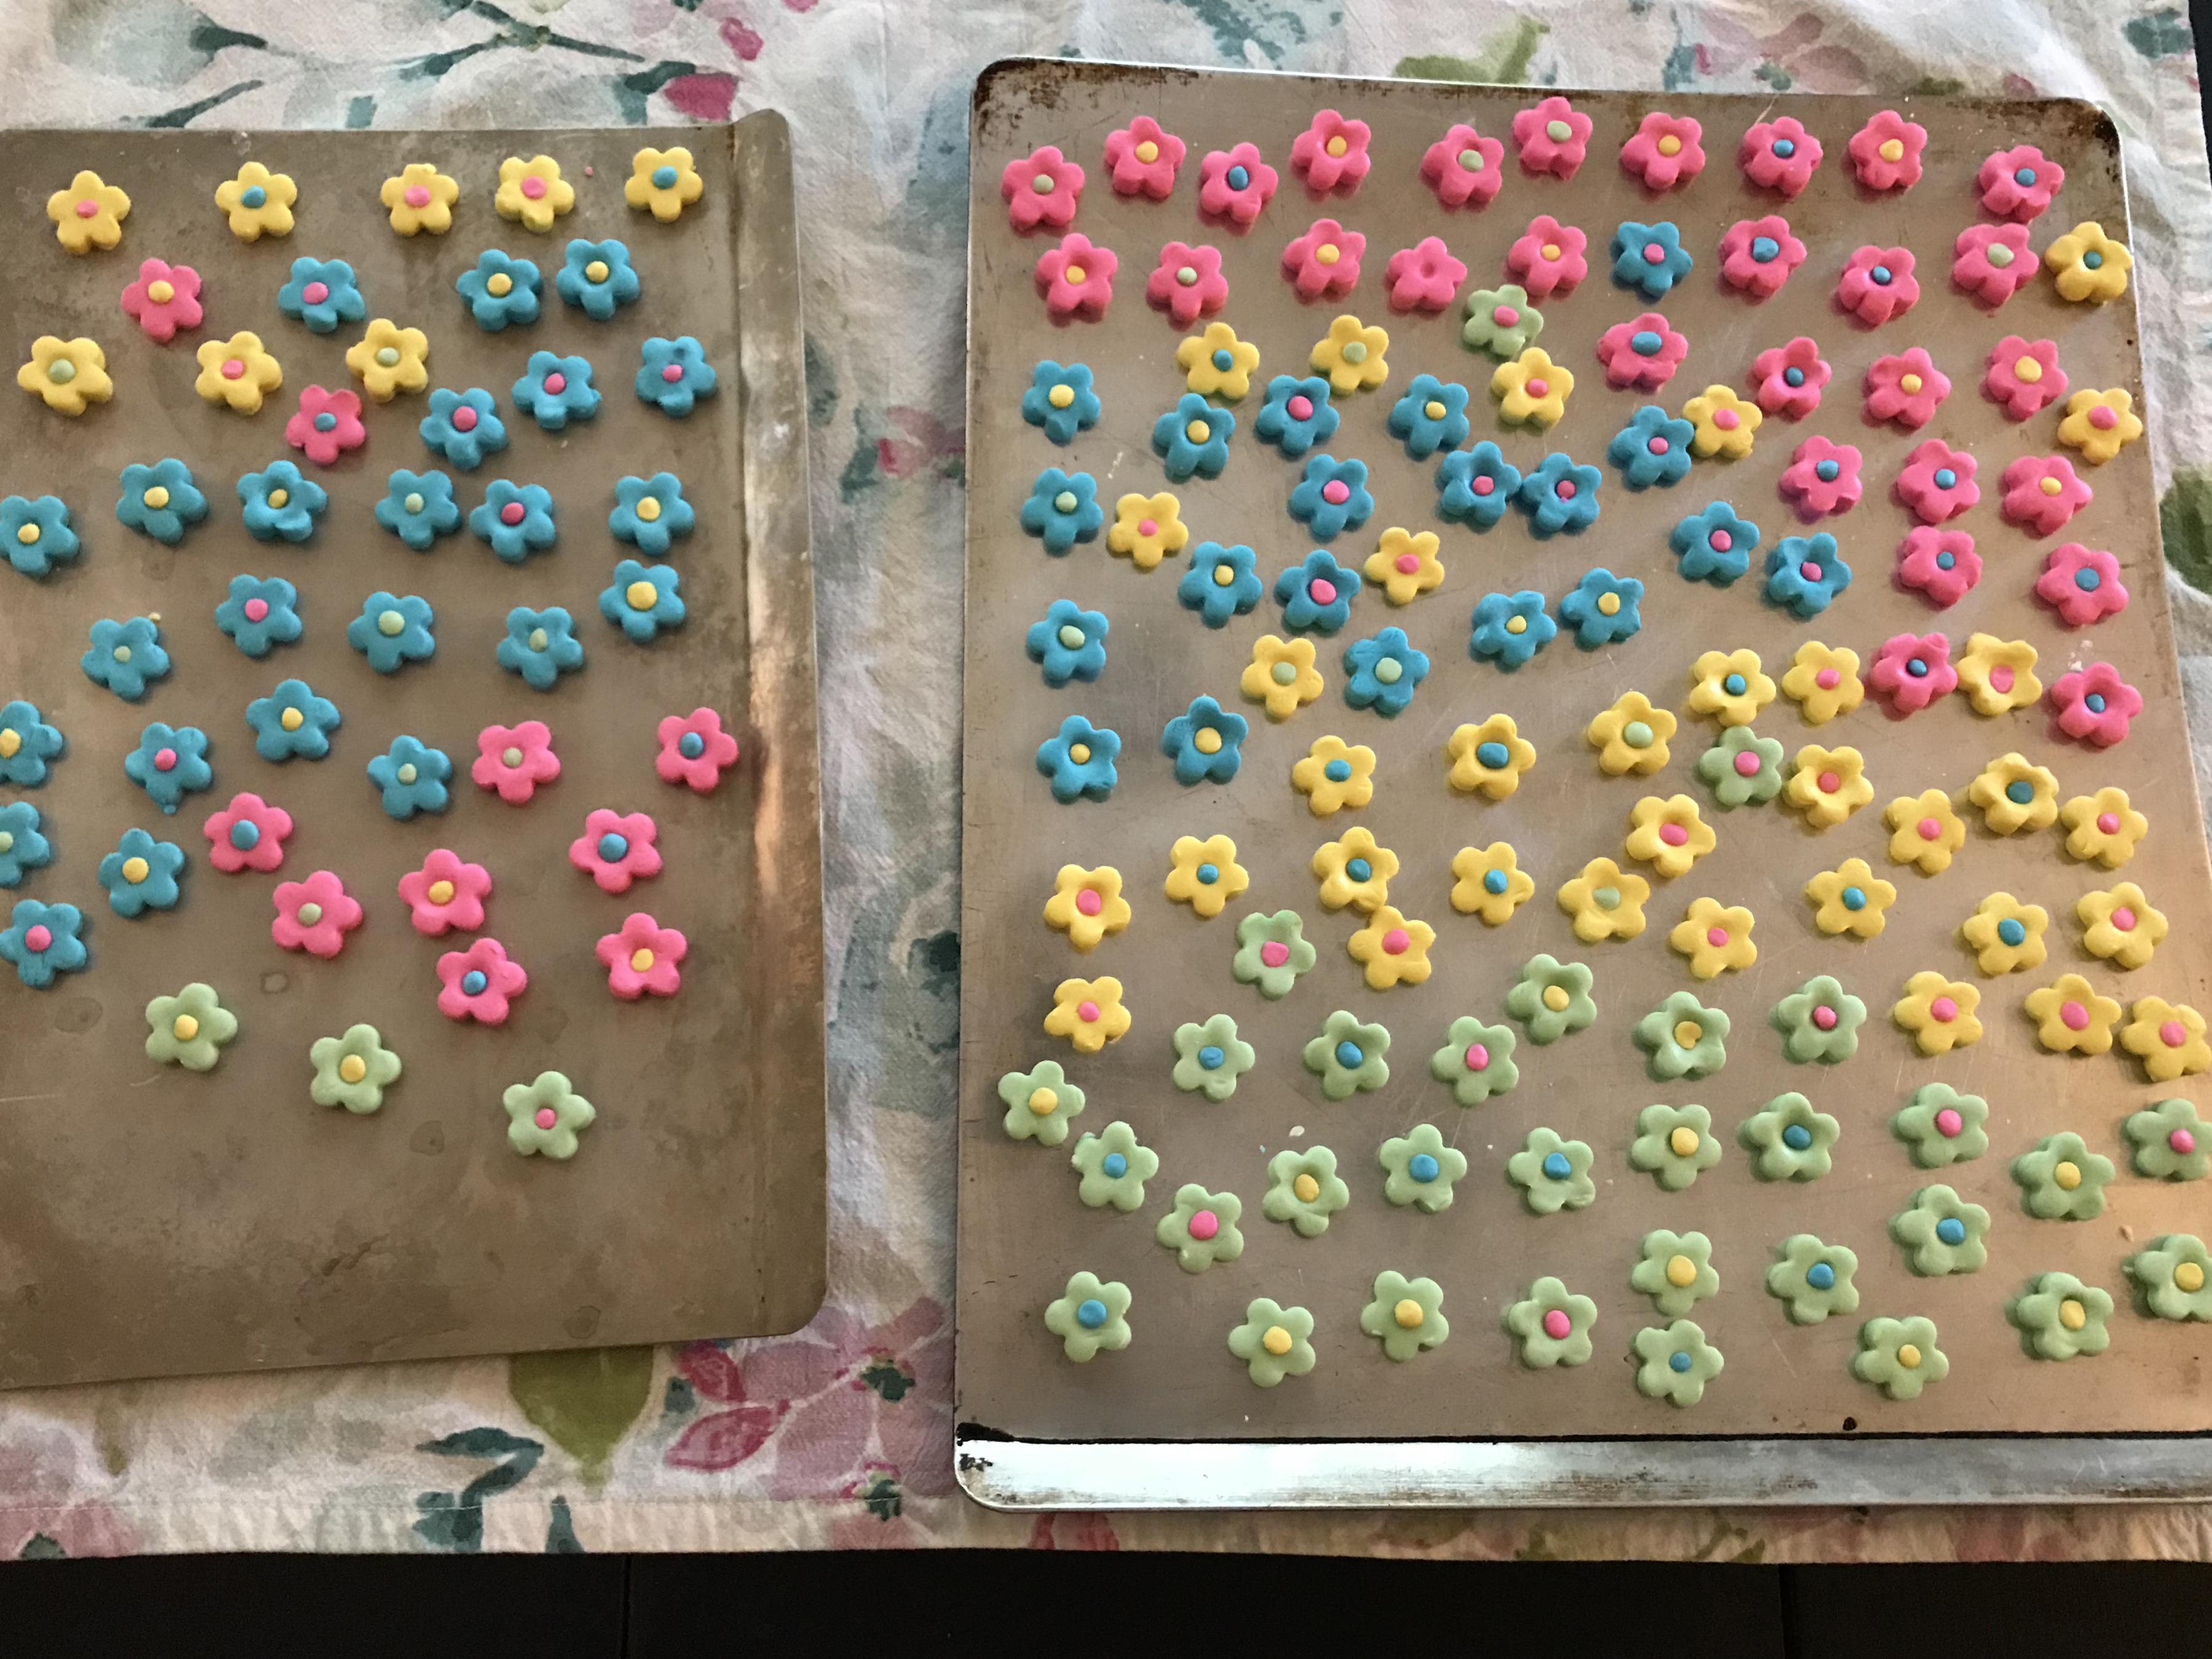 Mints drying on cookie sheets